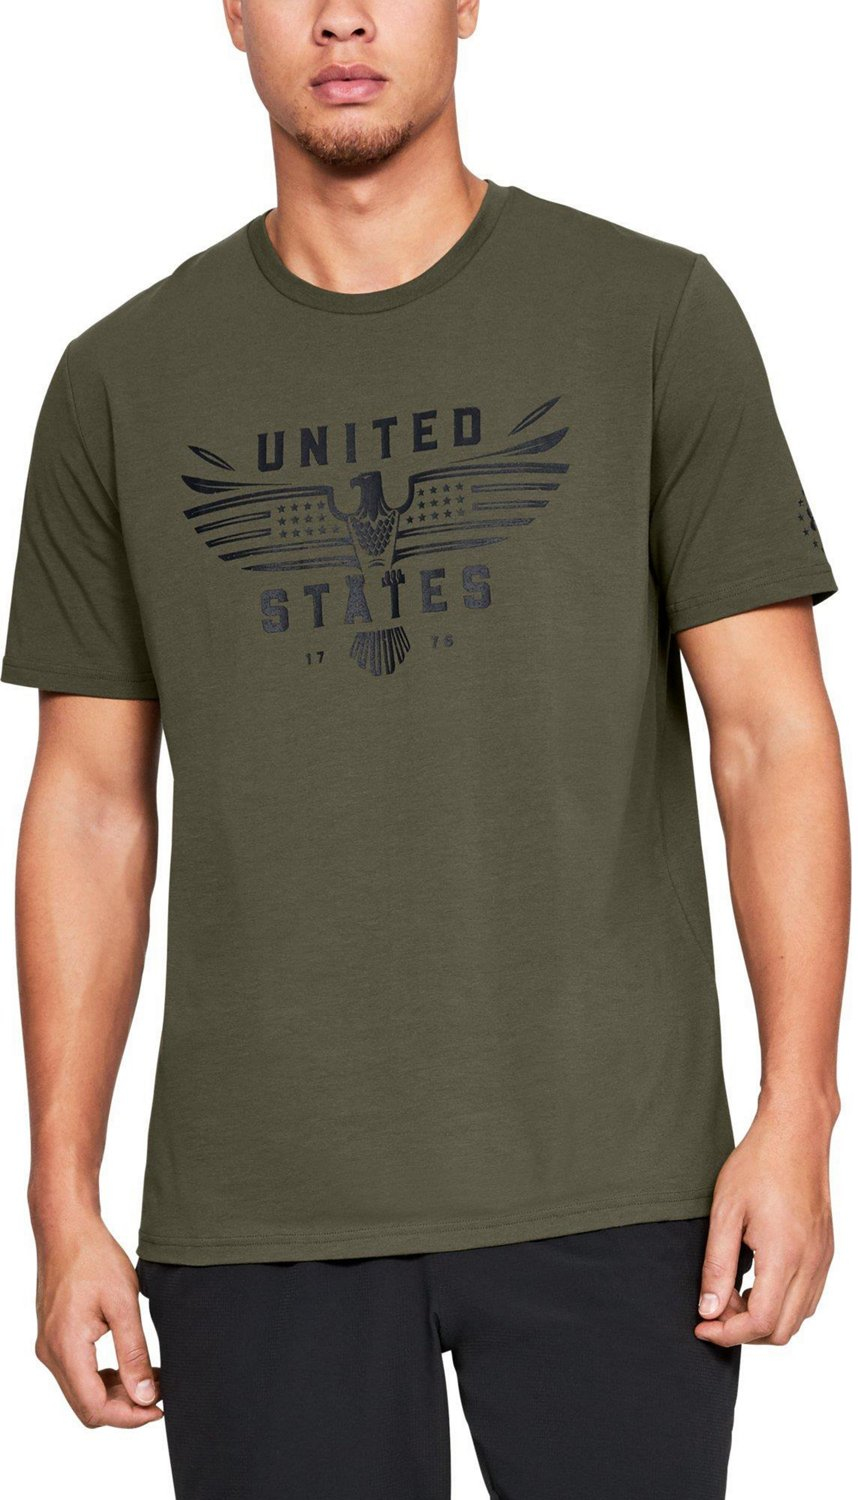 Under Armour Men's Freedom US Eagle T-shirt - view number 1